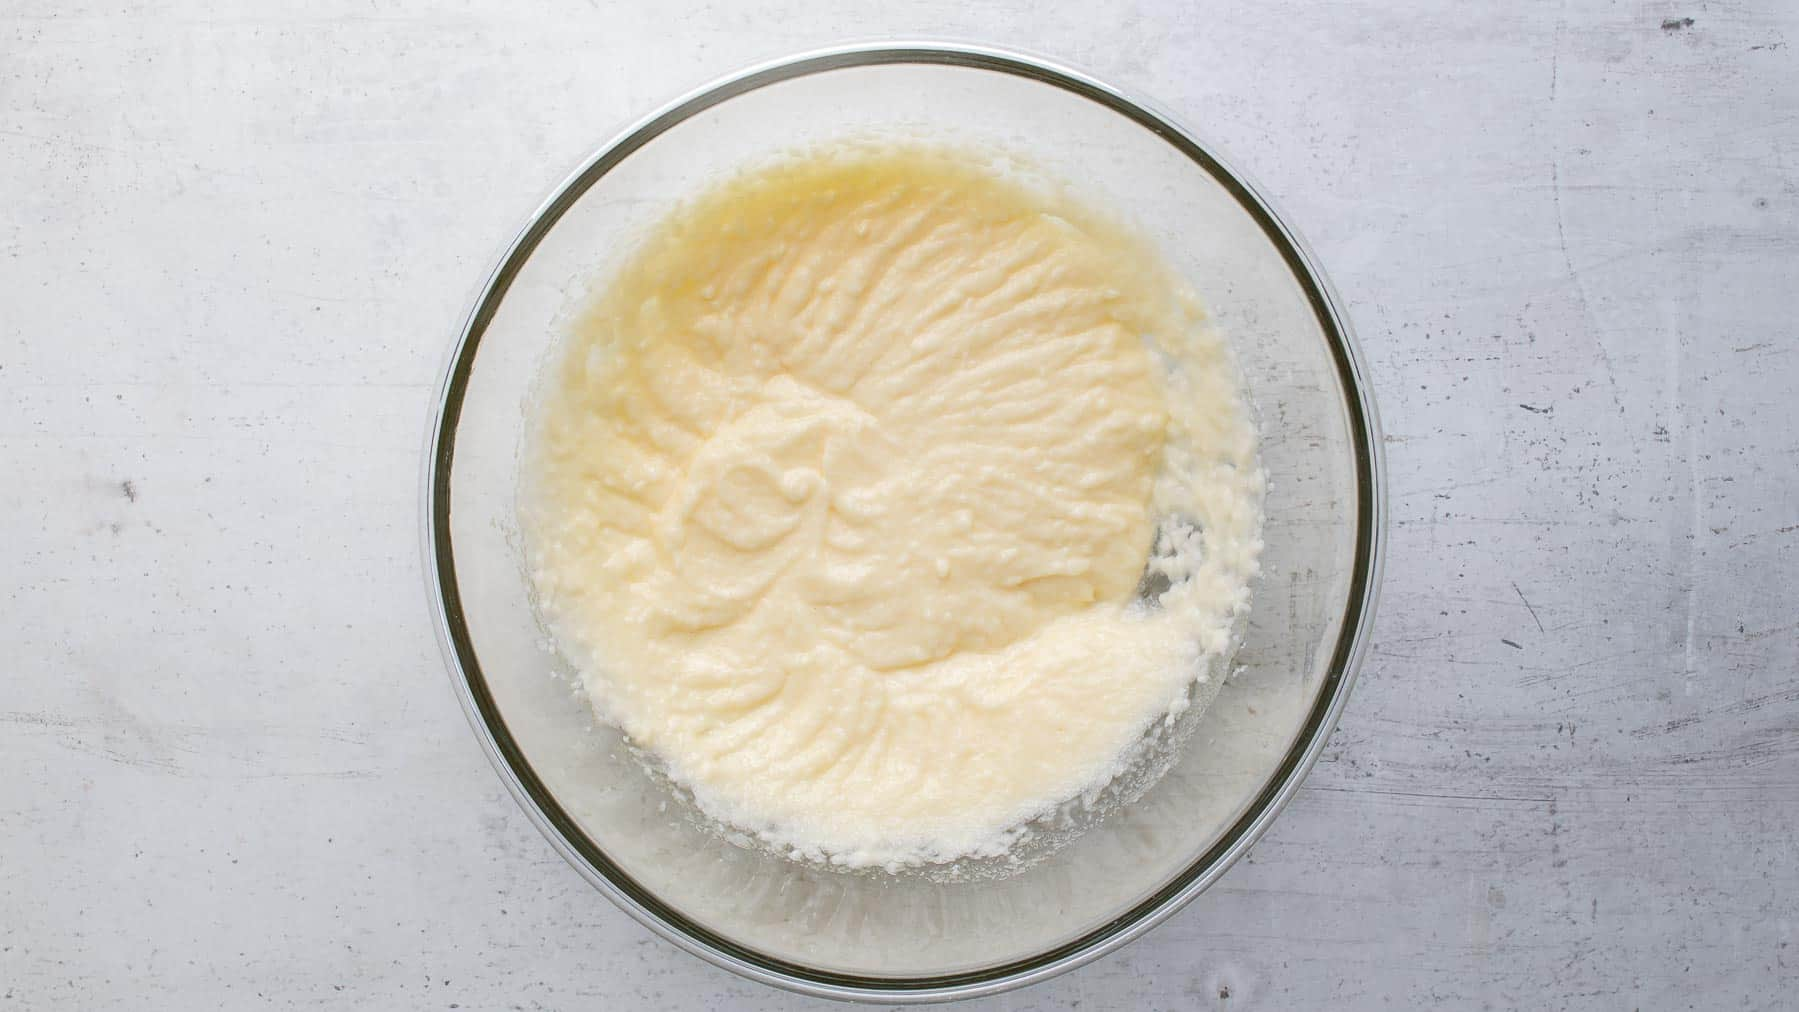 cake batter in a glass bowl